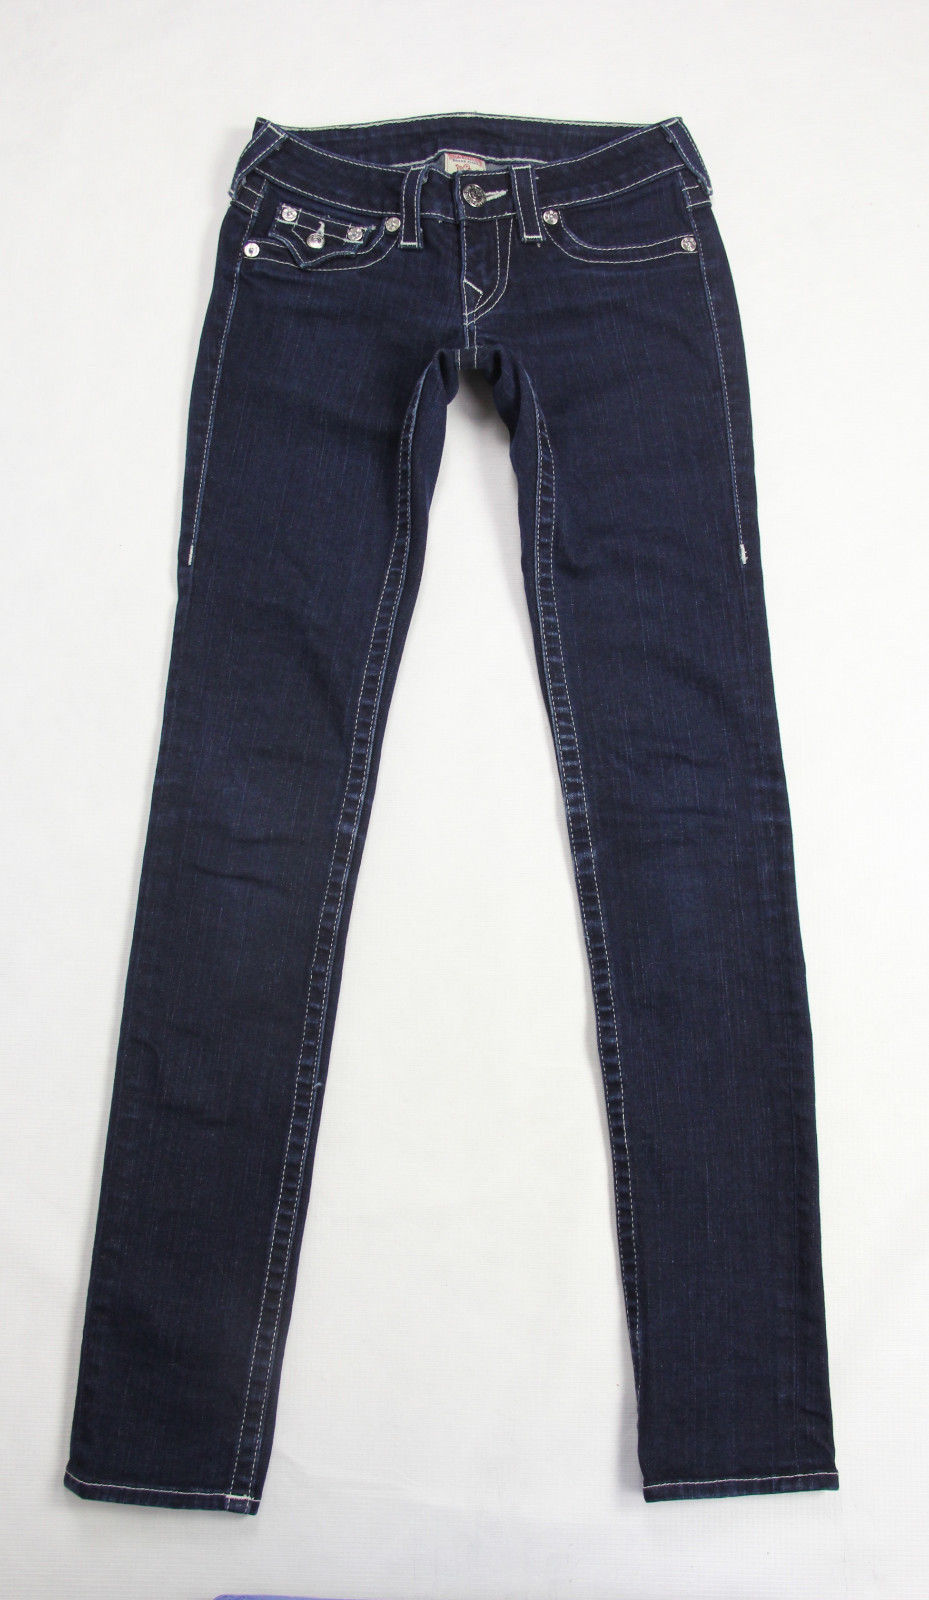 TRUE RELIGION SKINNY STRETCH JEANS, 25 - secondfirst